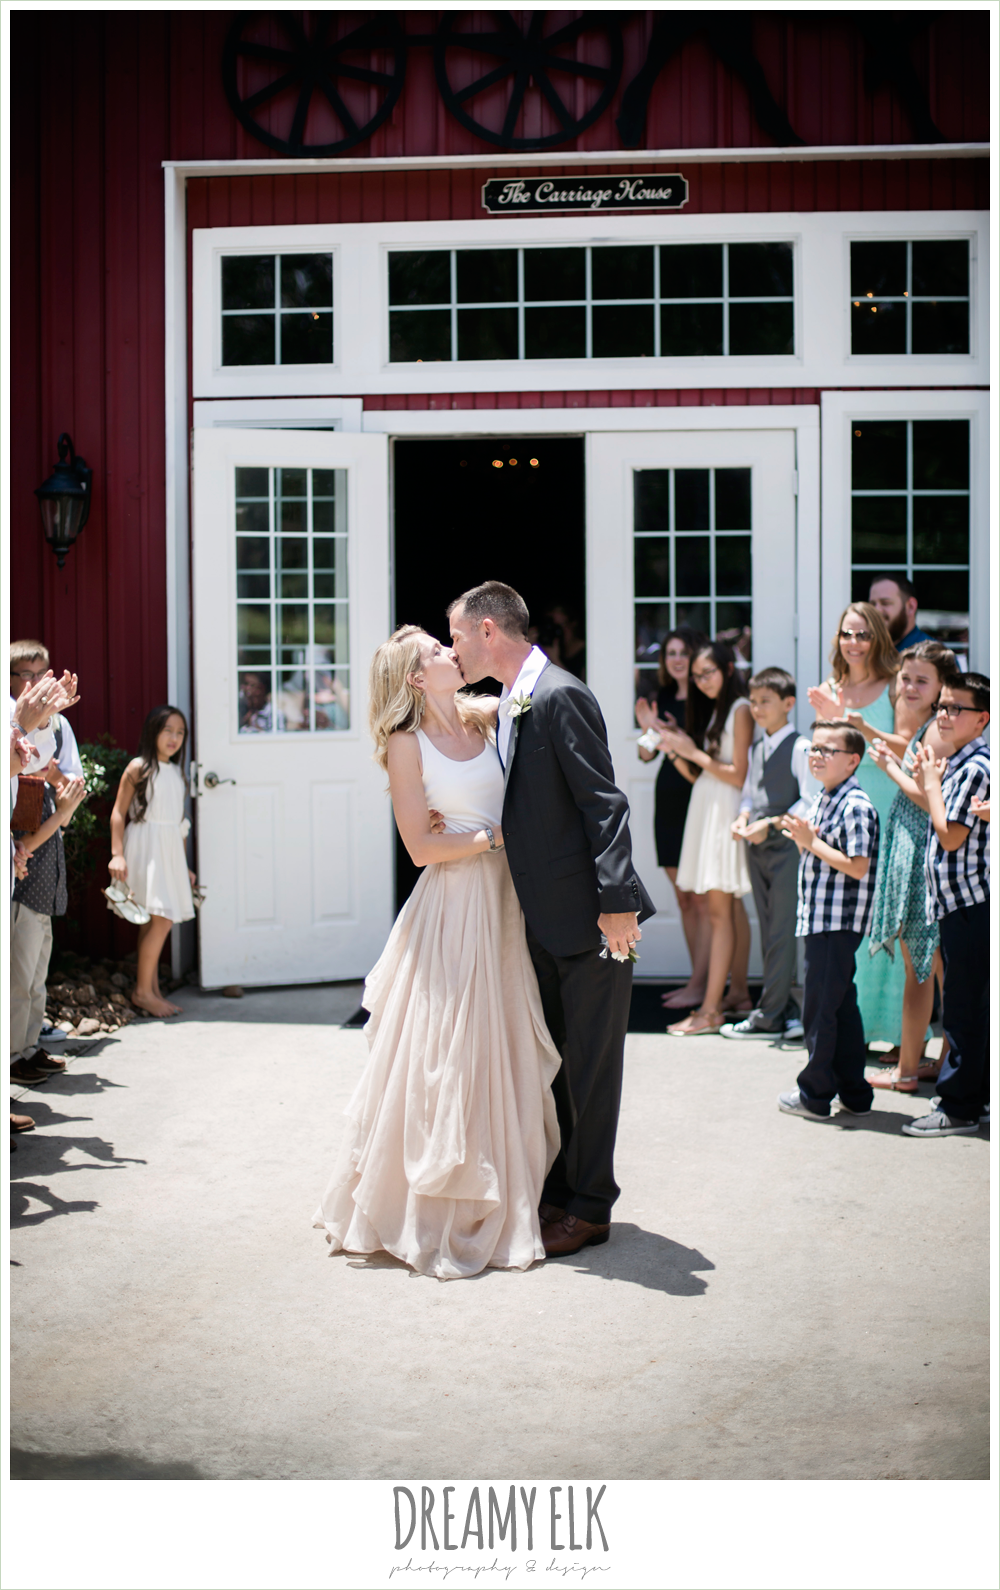 carol hannah kensington halter and blush skirt, bride and groom kissing while leaving wedding reception, july summer morning wedding, ashelynn manor, magnolia, texas {dreamy elk photography and design} photo